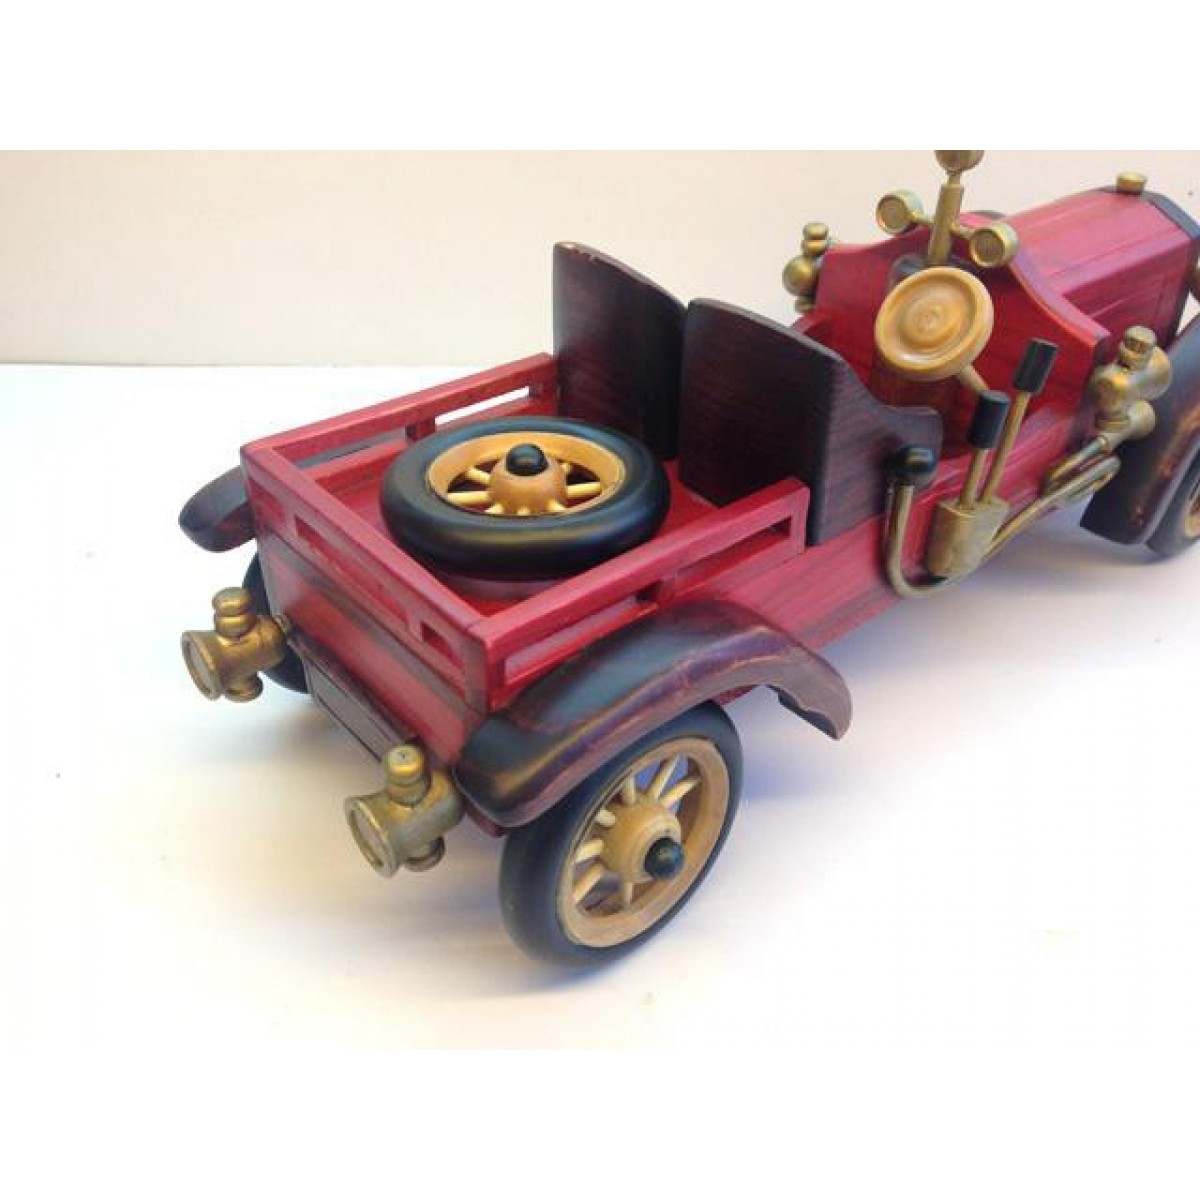 Handmade Wooden Home Decorative Novel Vintage Car Model B